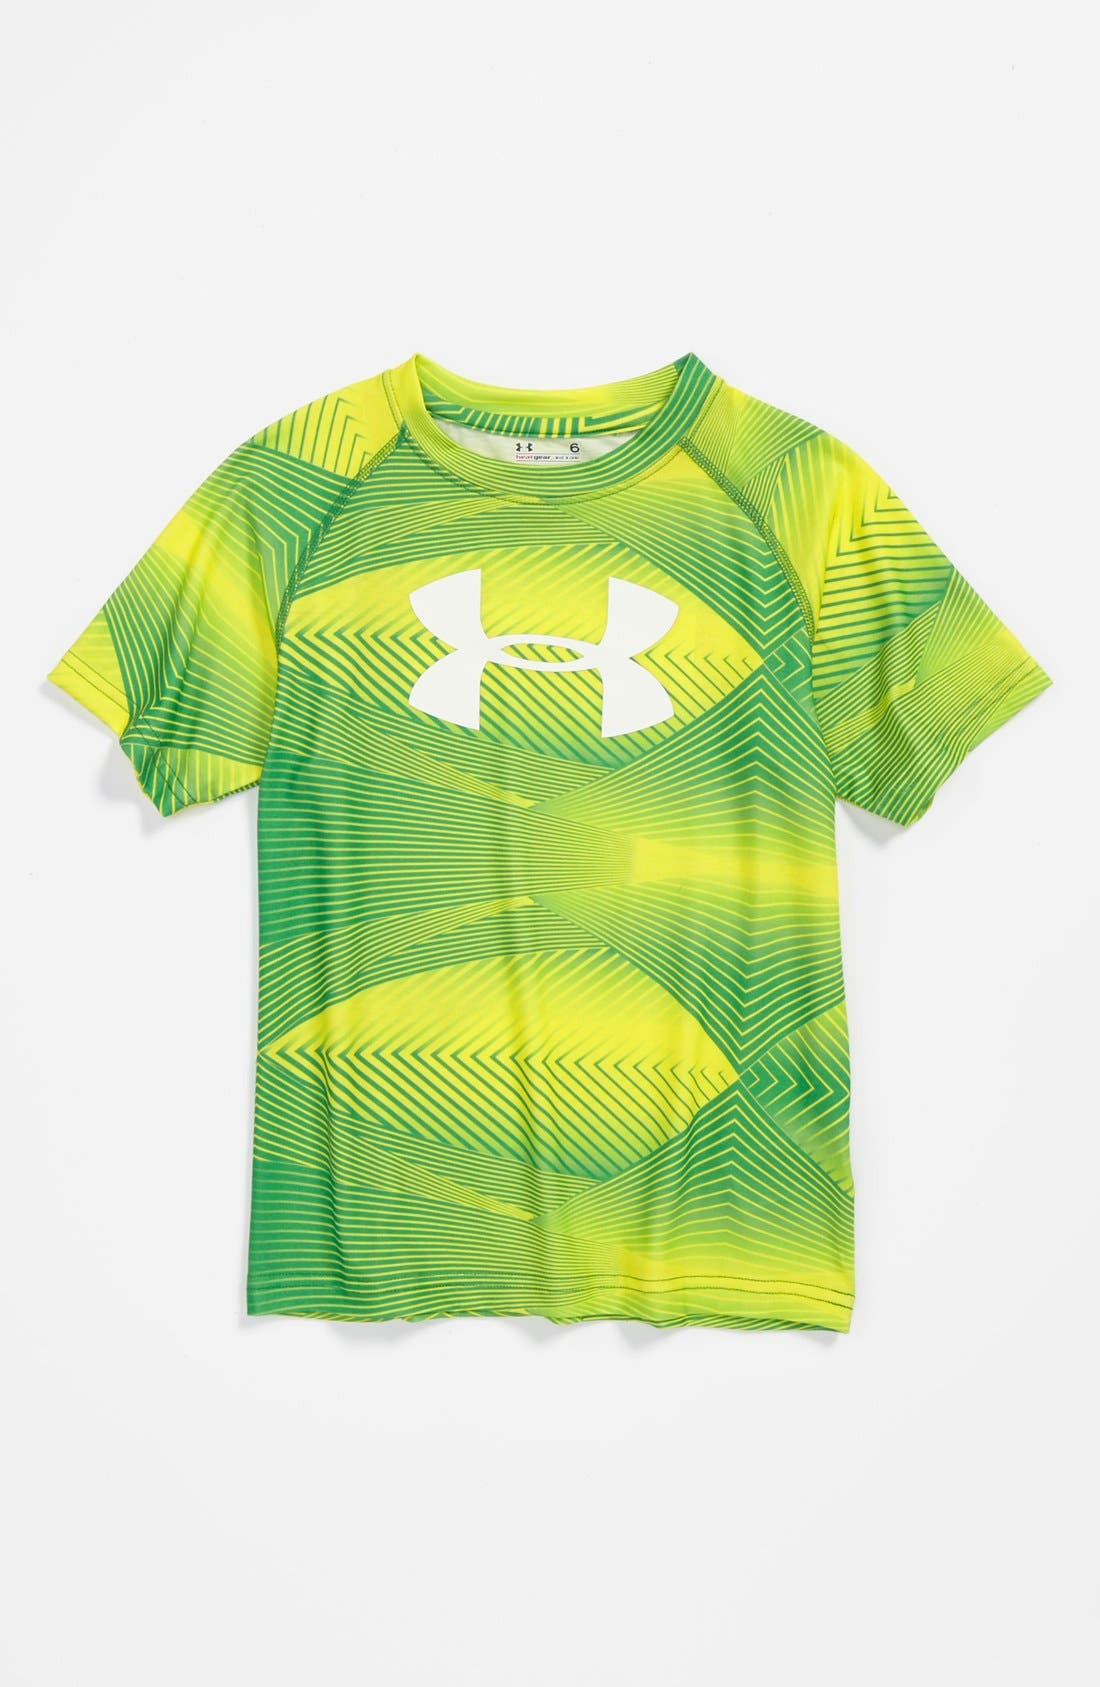 Alternate Image 1 Selected - Under Armour 'Ultralight' T-Shirt (Little Boys)